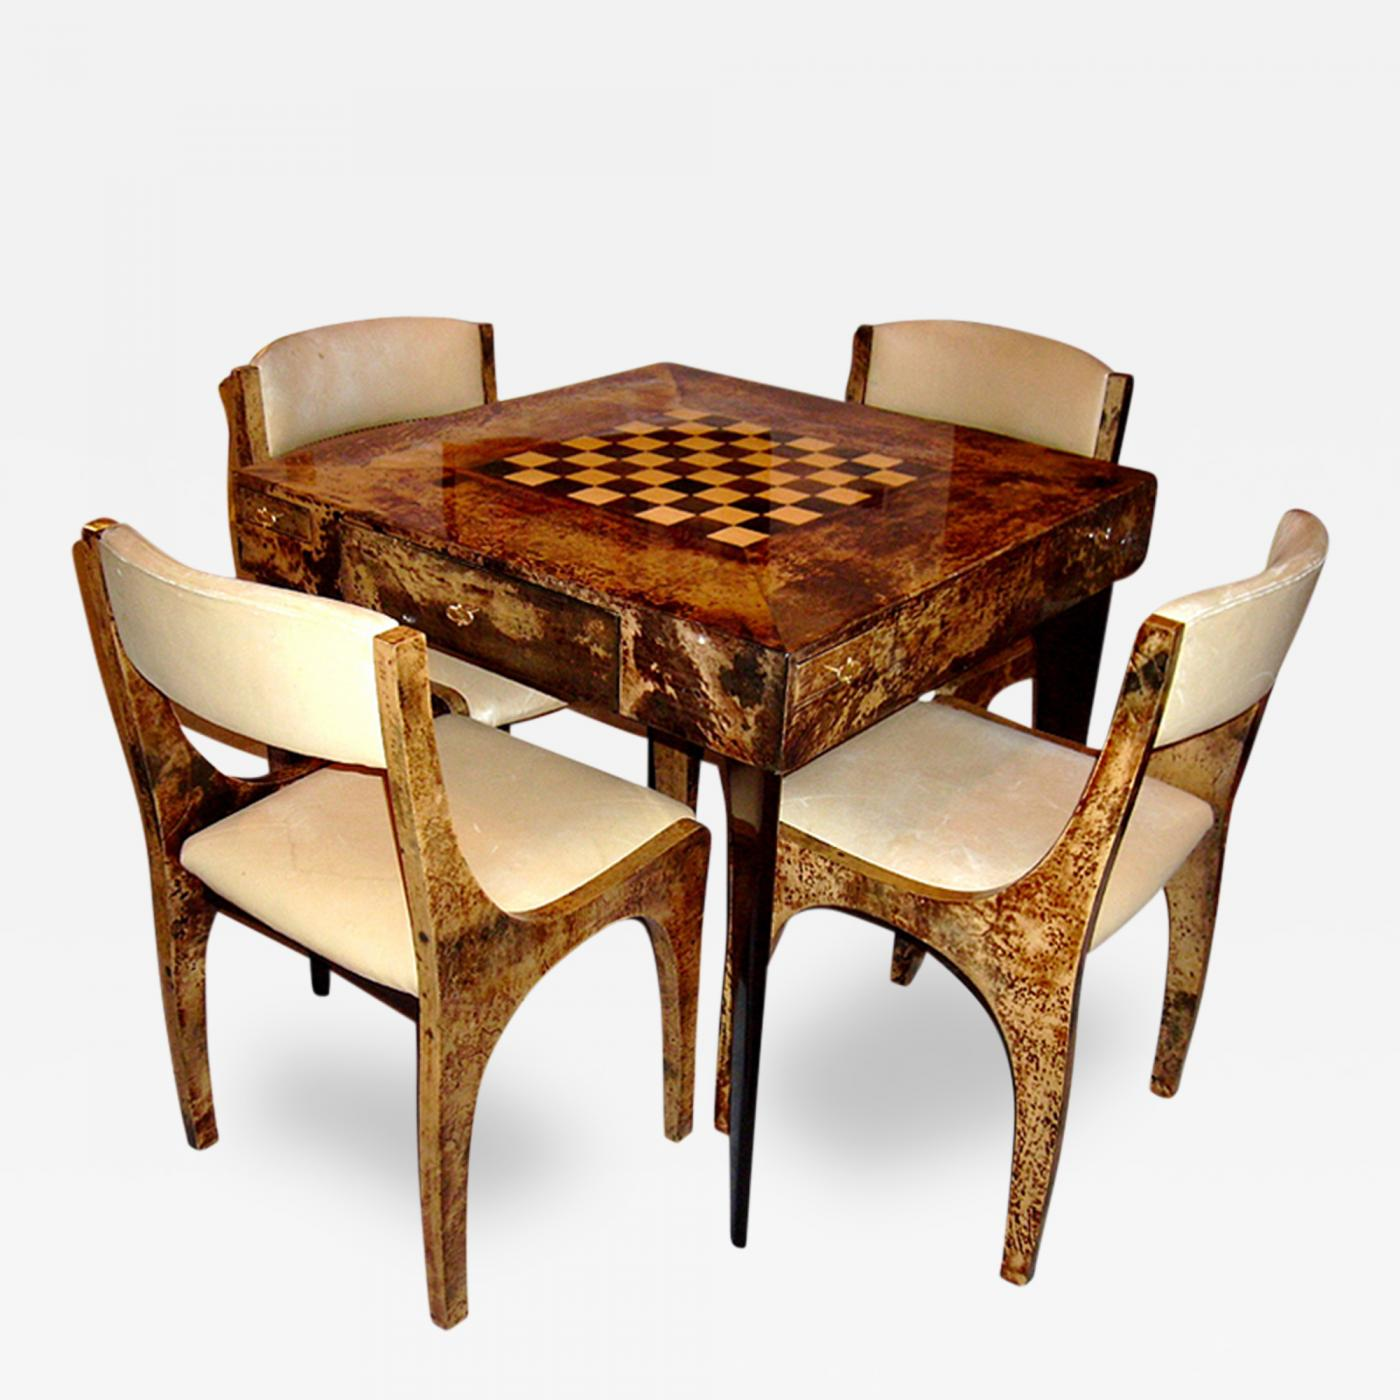 Aldo Tura Italian Goatskin Parchment Game Table and Four Chairs